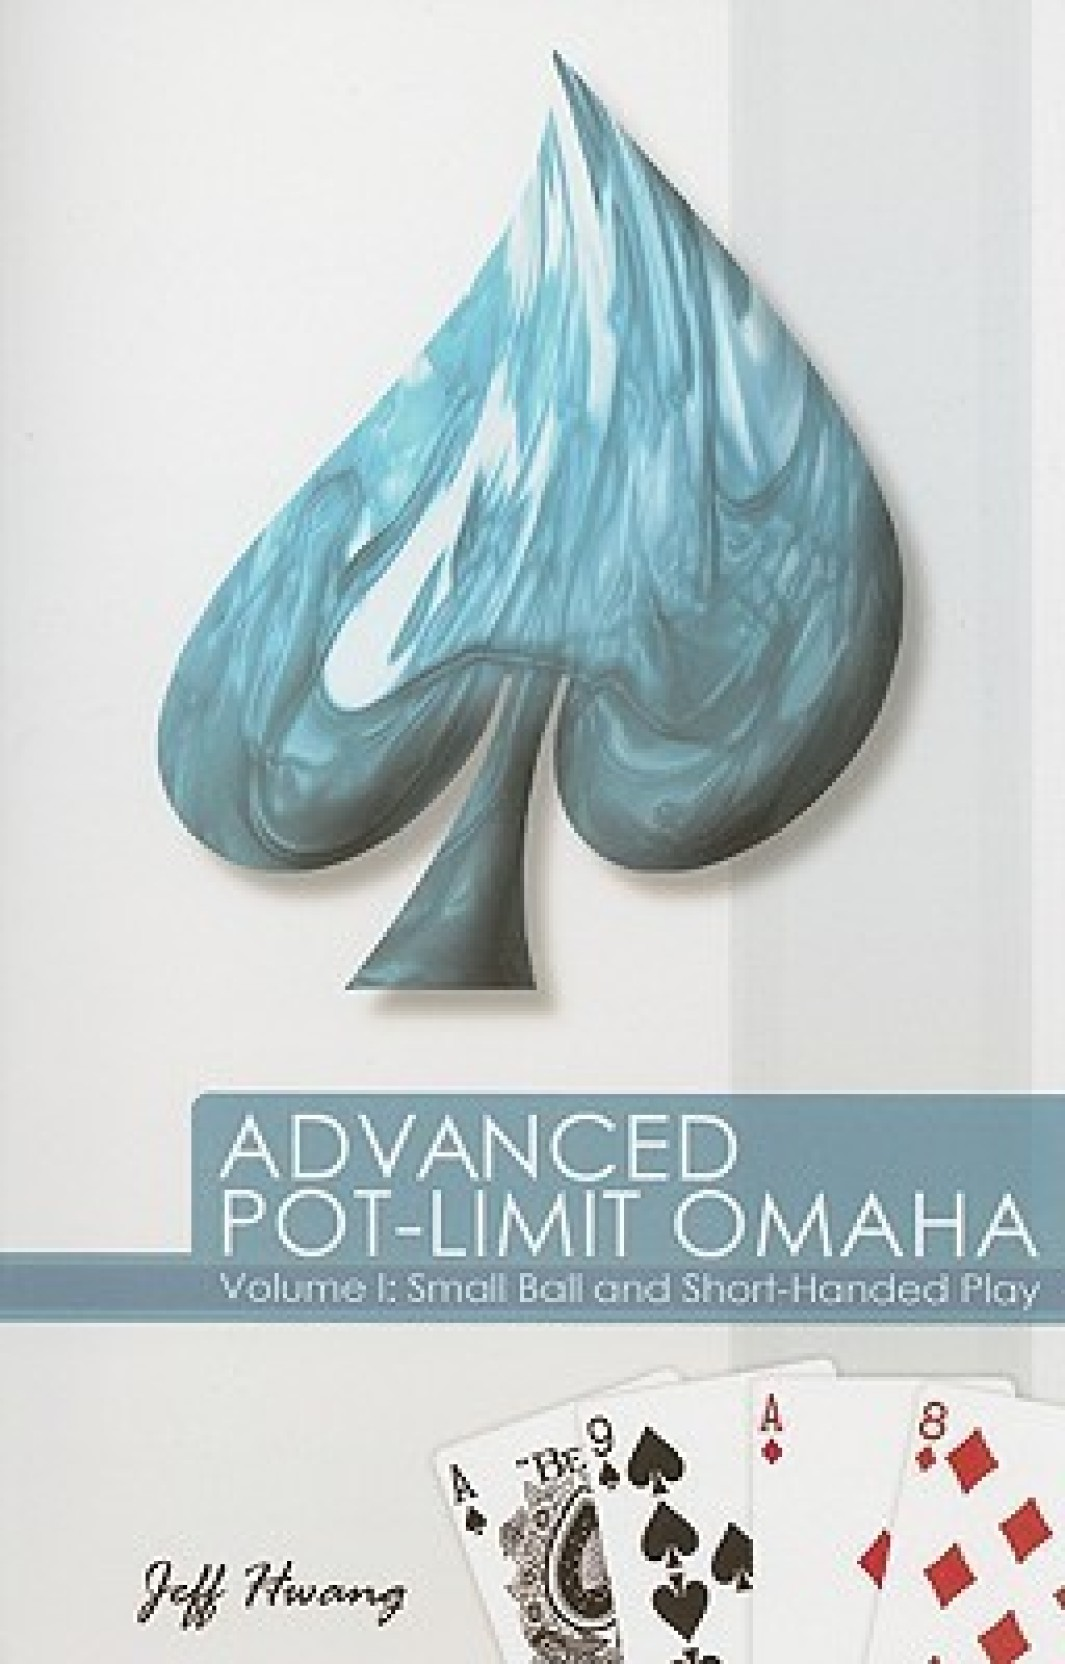 Advanced Pot-Limit Omaha: Volume I: Small Ball and Short-Handed Play. Share